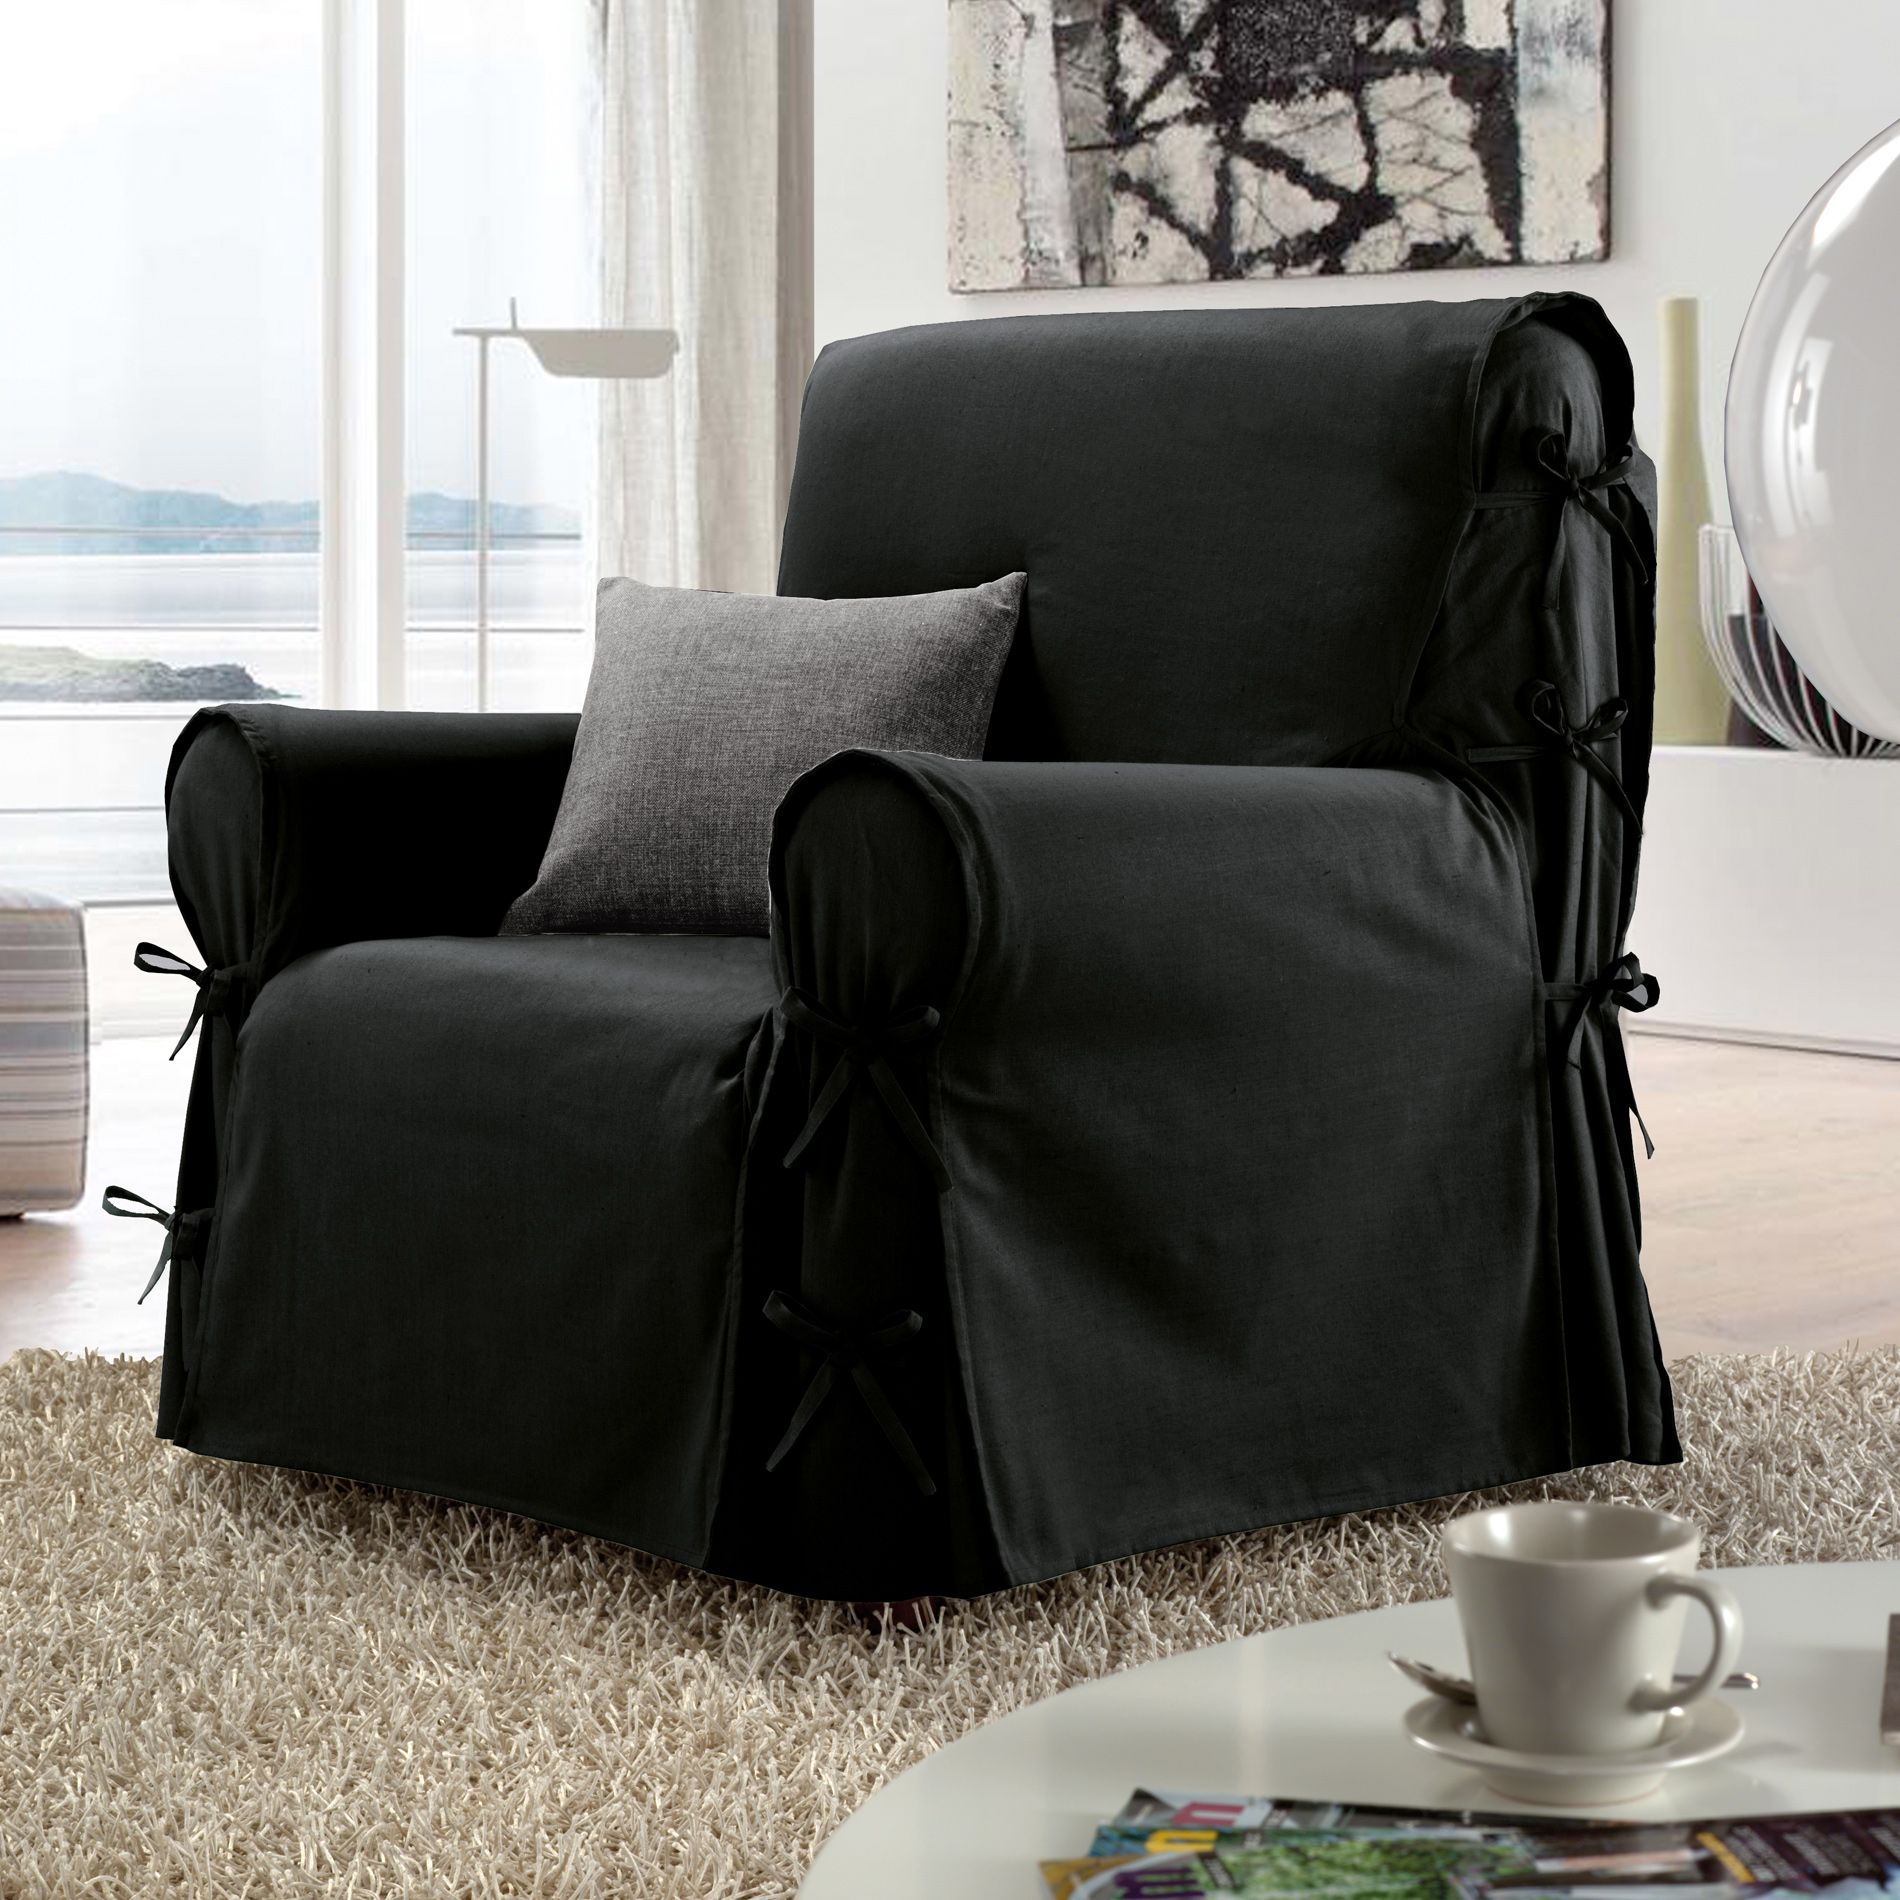 housse de fauteuil stella noir housse de fauteuil eminza. Black Bedroom Furniture Sets. Home Design Ideas